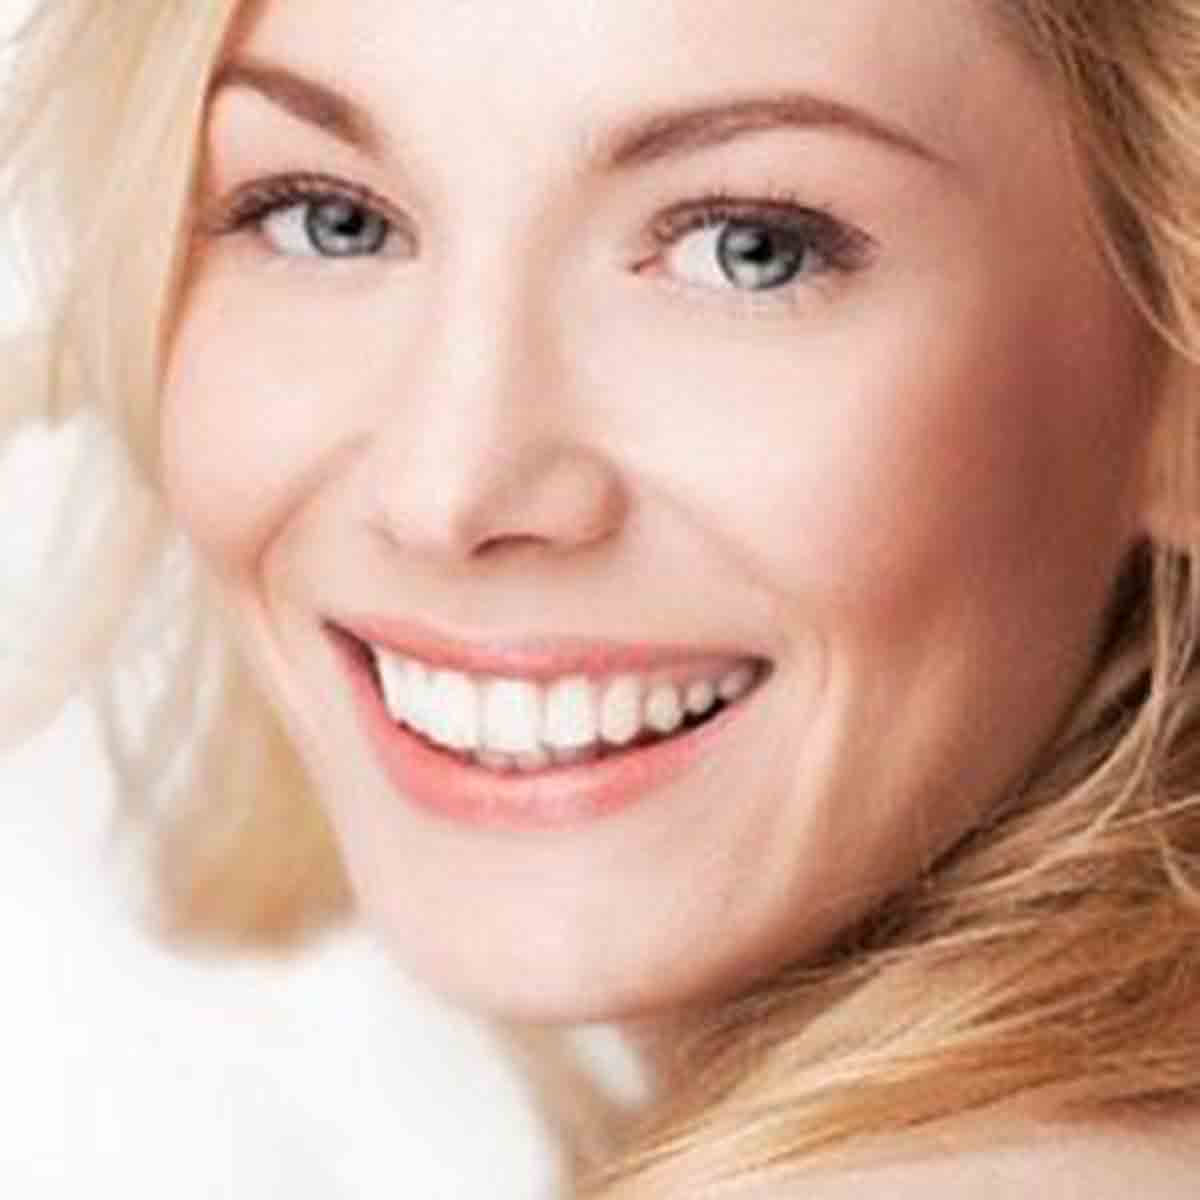 What You Need To Know About DHEA - anti aging in women